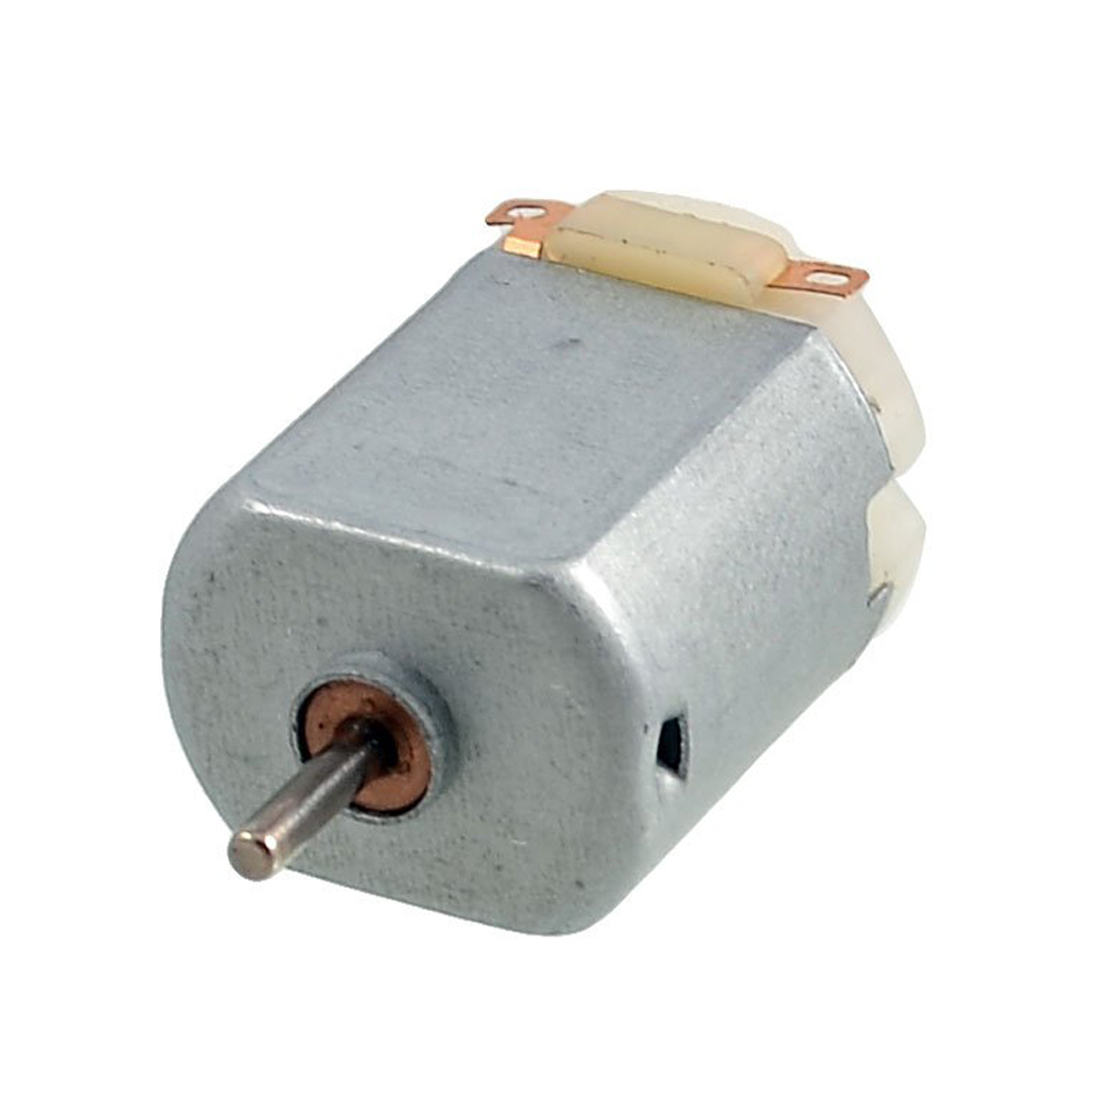 Dc 3v 0 2a 12000rpm 65g Cm Mini Electric Motor For Diy